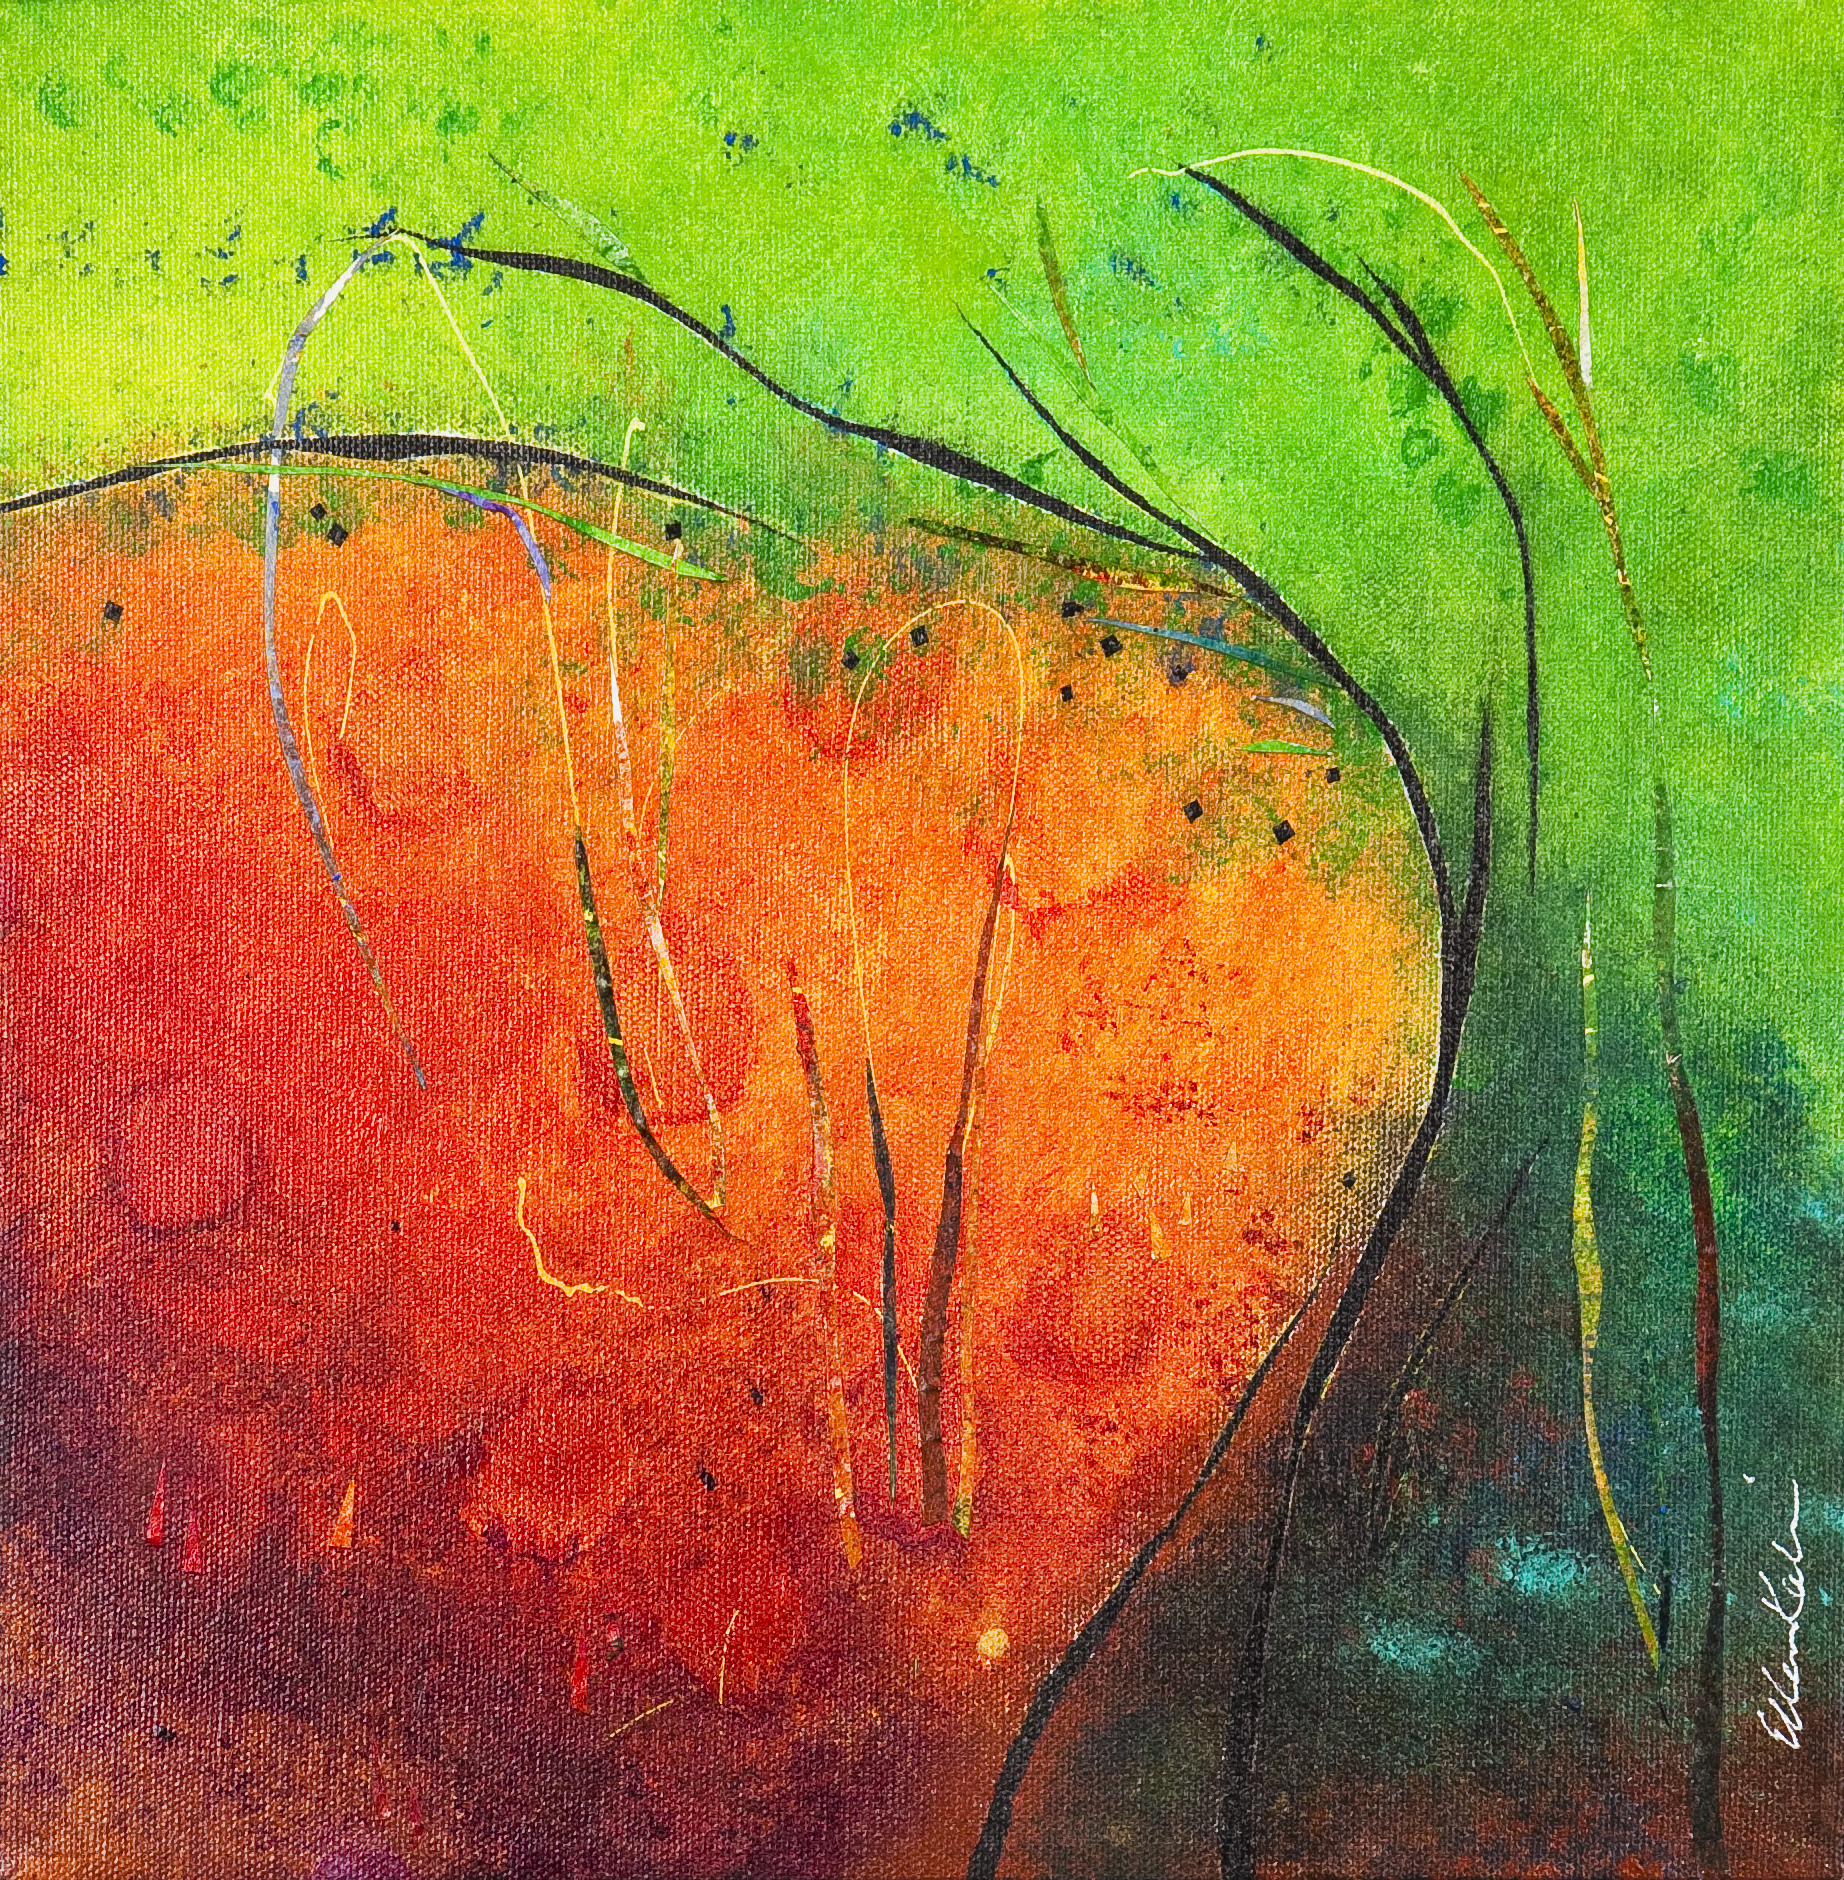 GreenTreeOrangeEarth - 12x12, $275